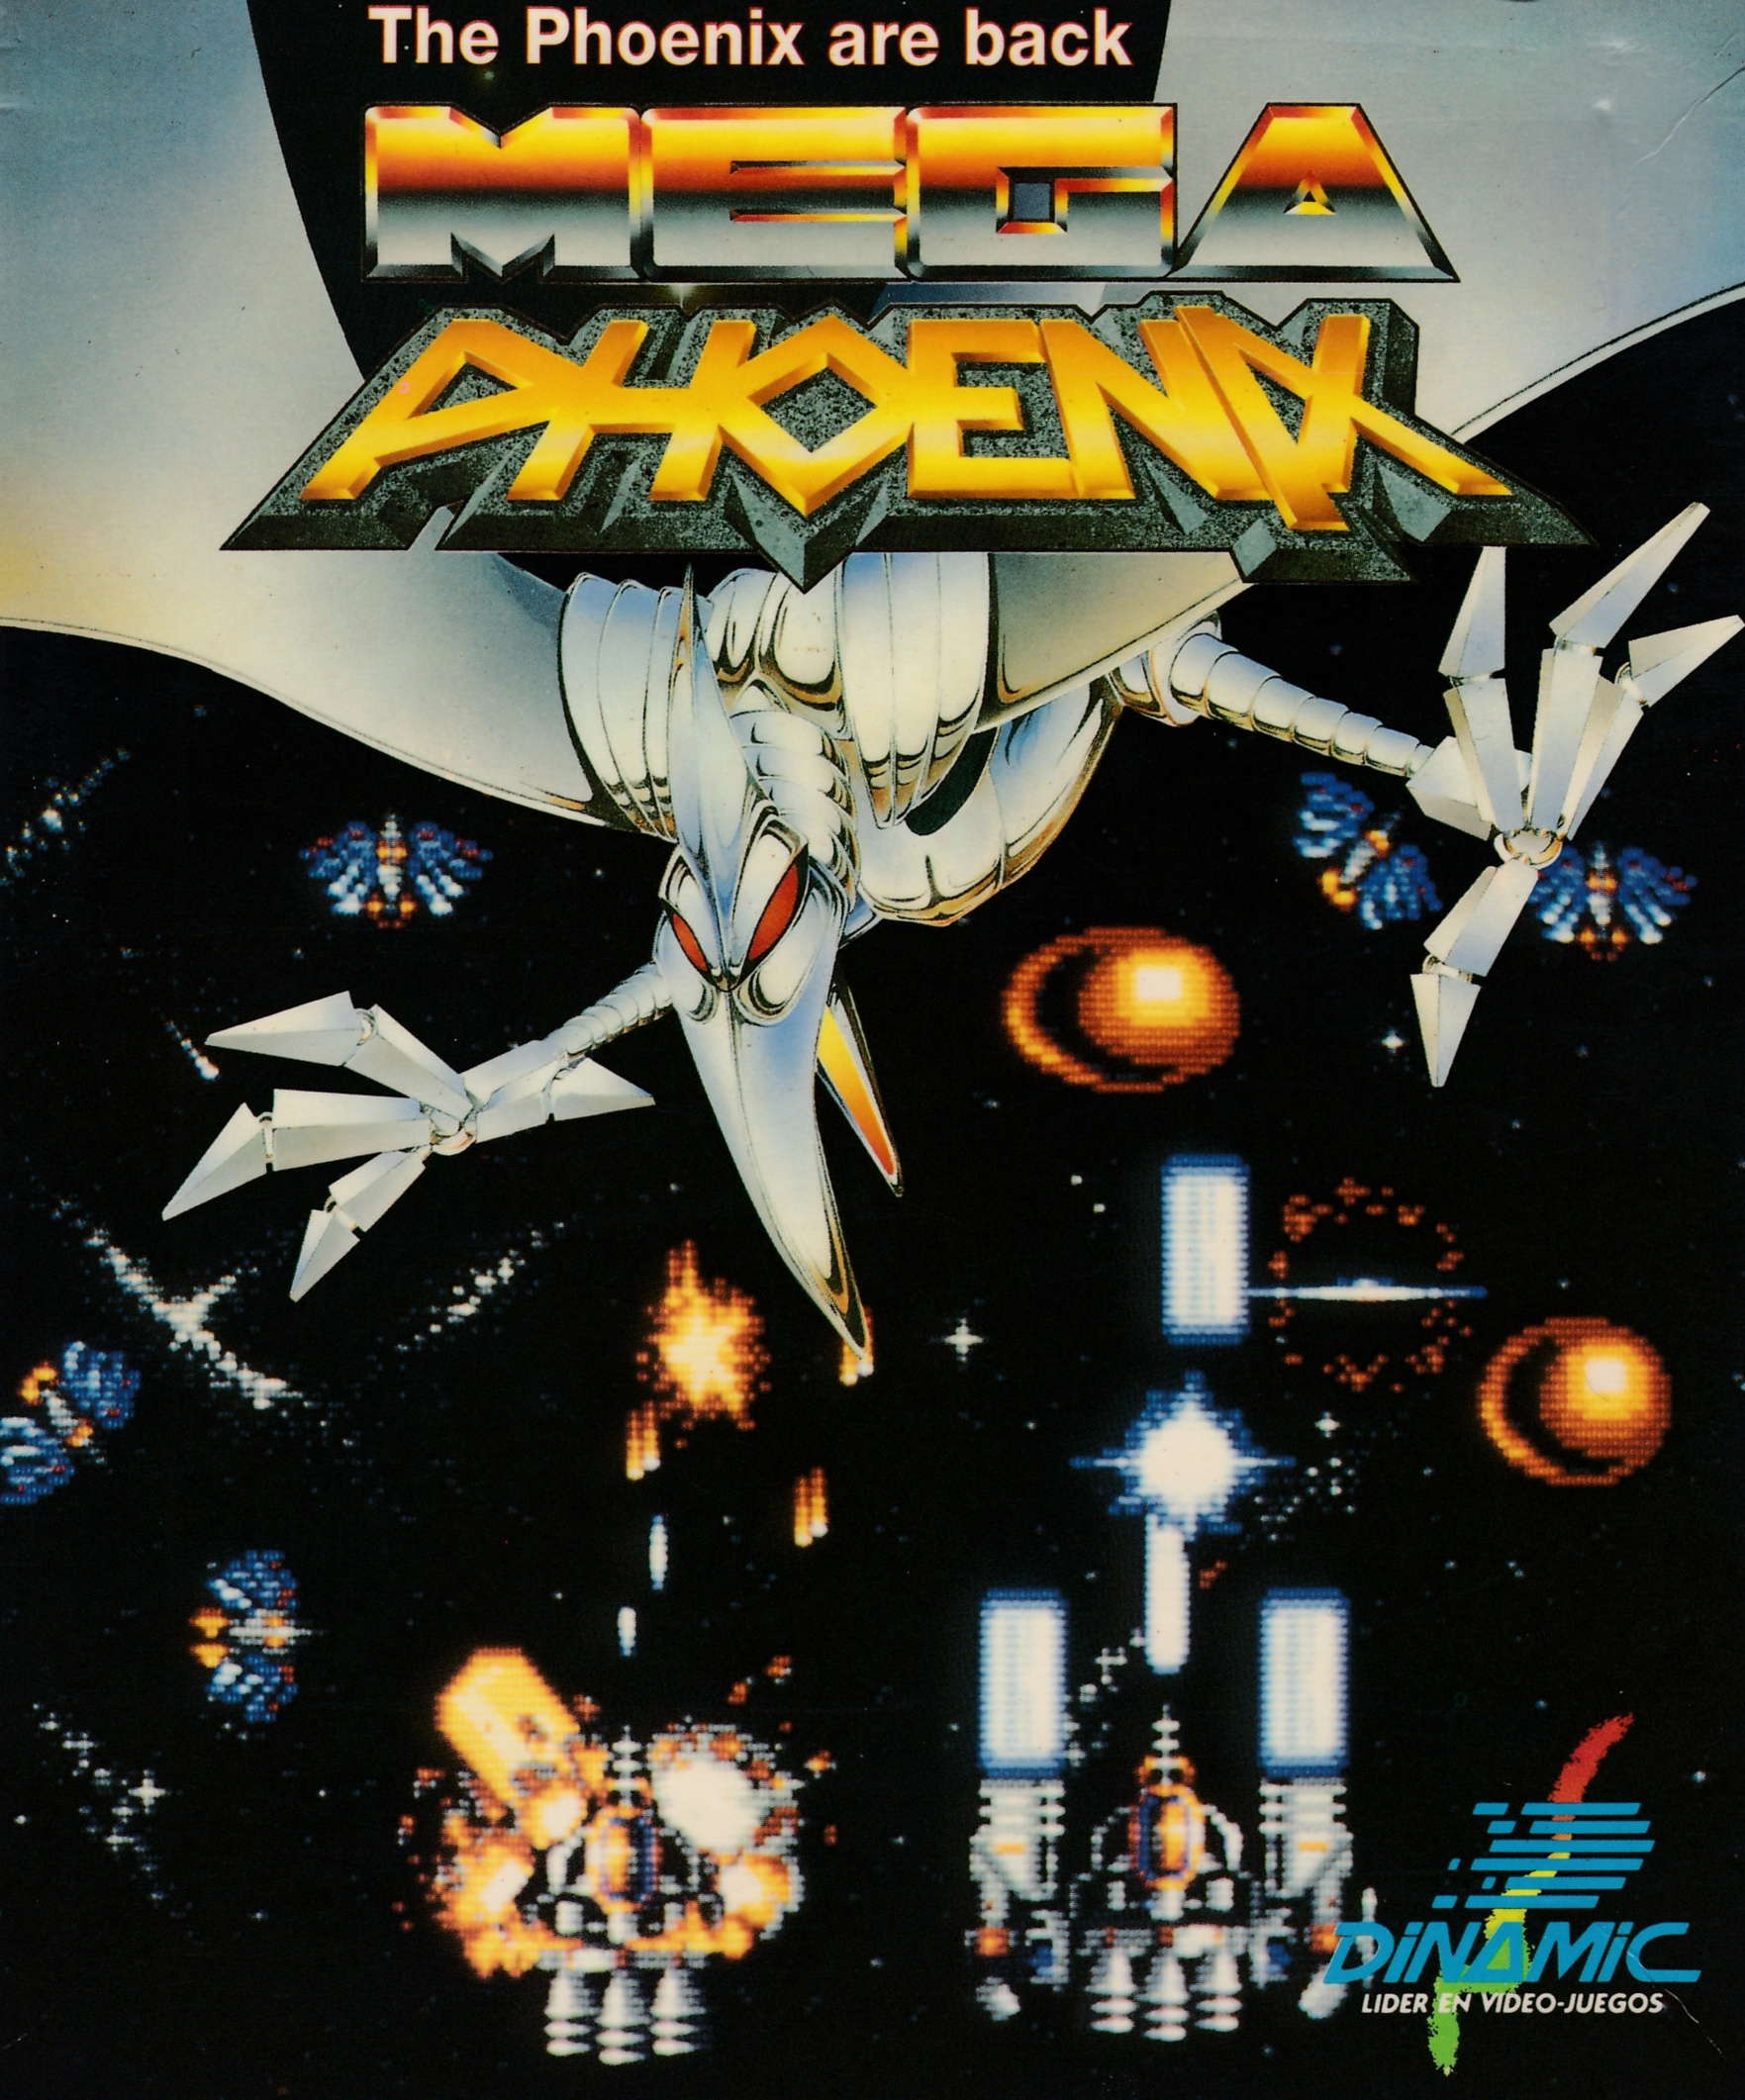 cover of the Amstrad CPC game Mega Phoenix  by GameBase CPC